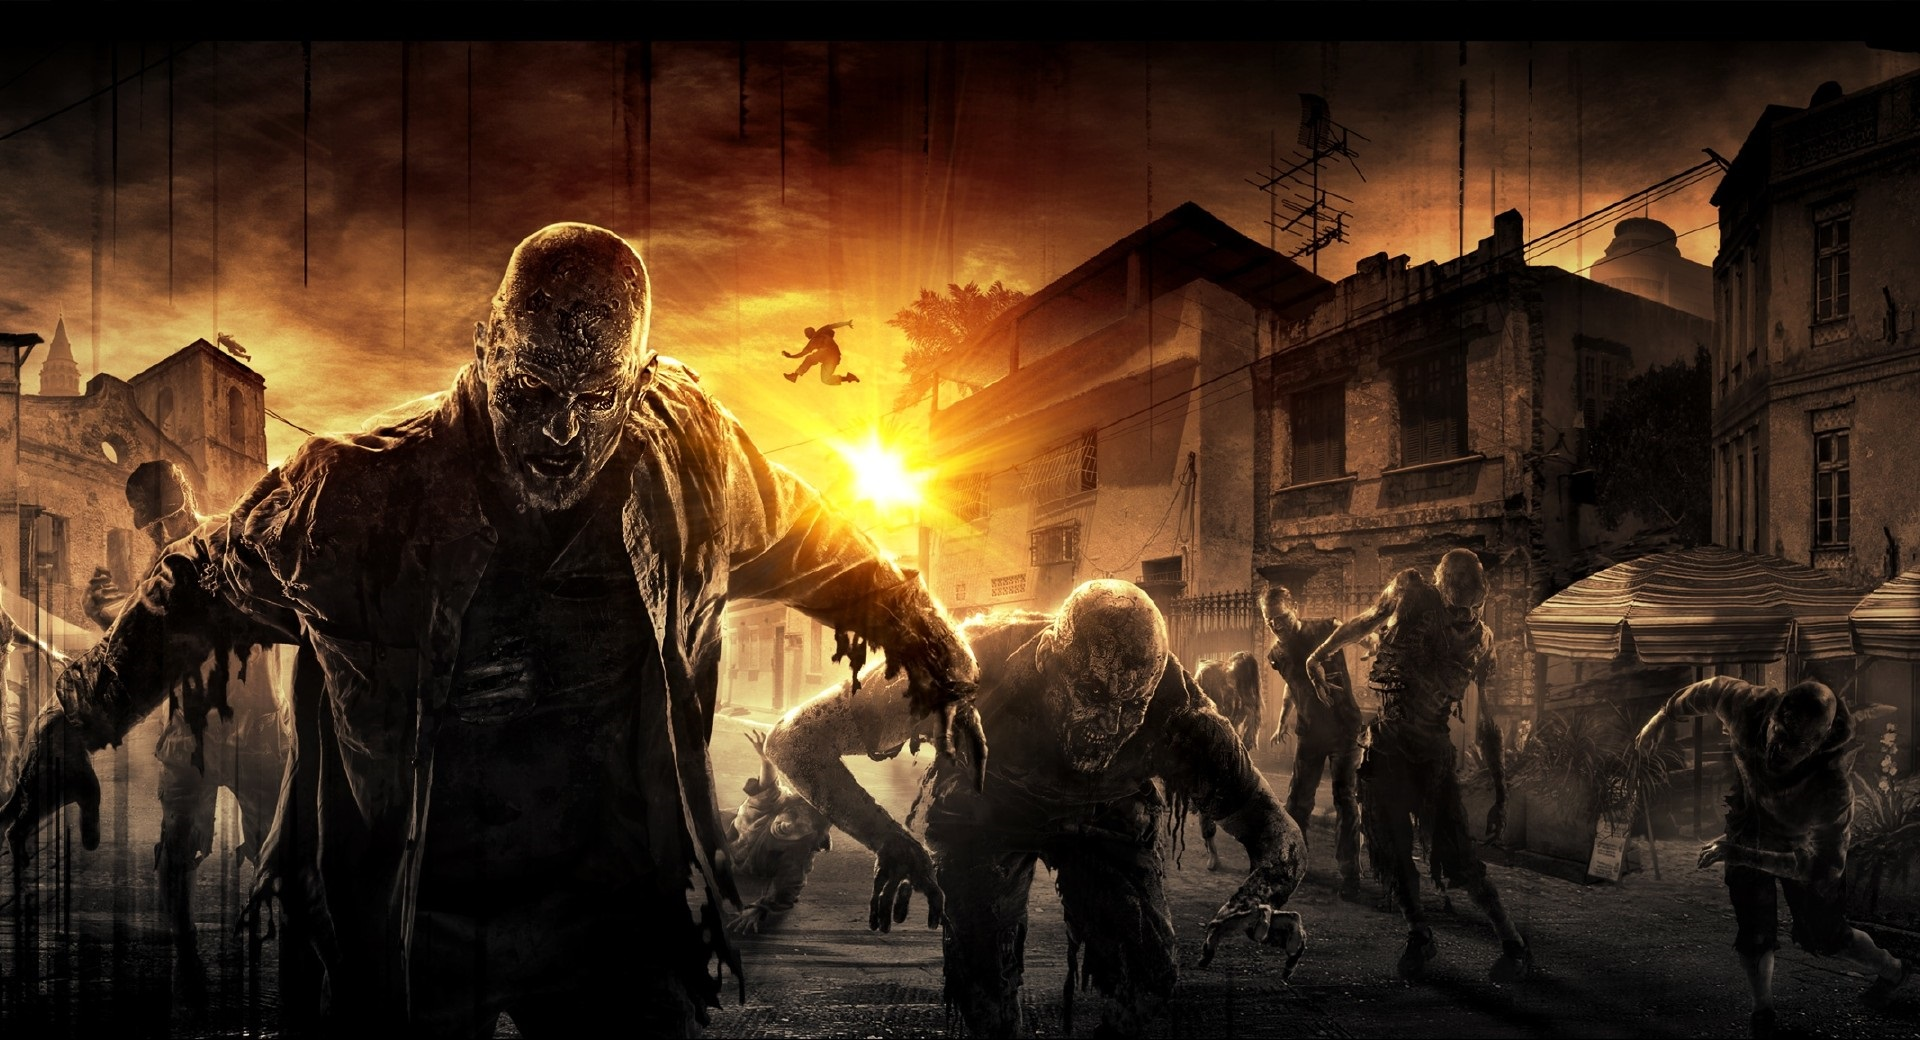 Download 1920x1080 HD Wallpaper Dying Light Zombie Sunset Ruin Fury 1920x1040